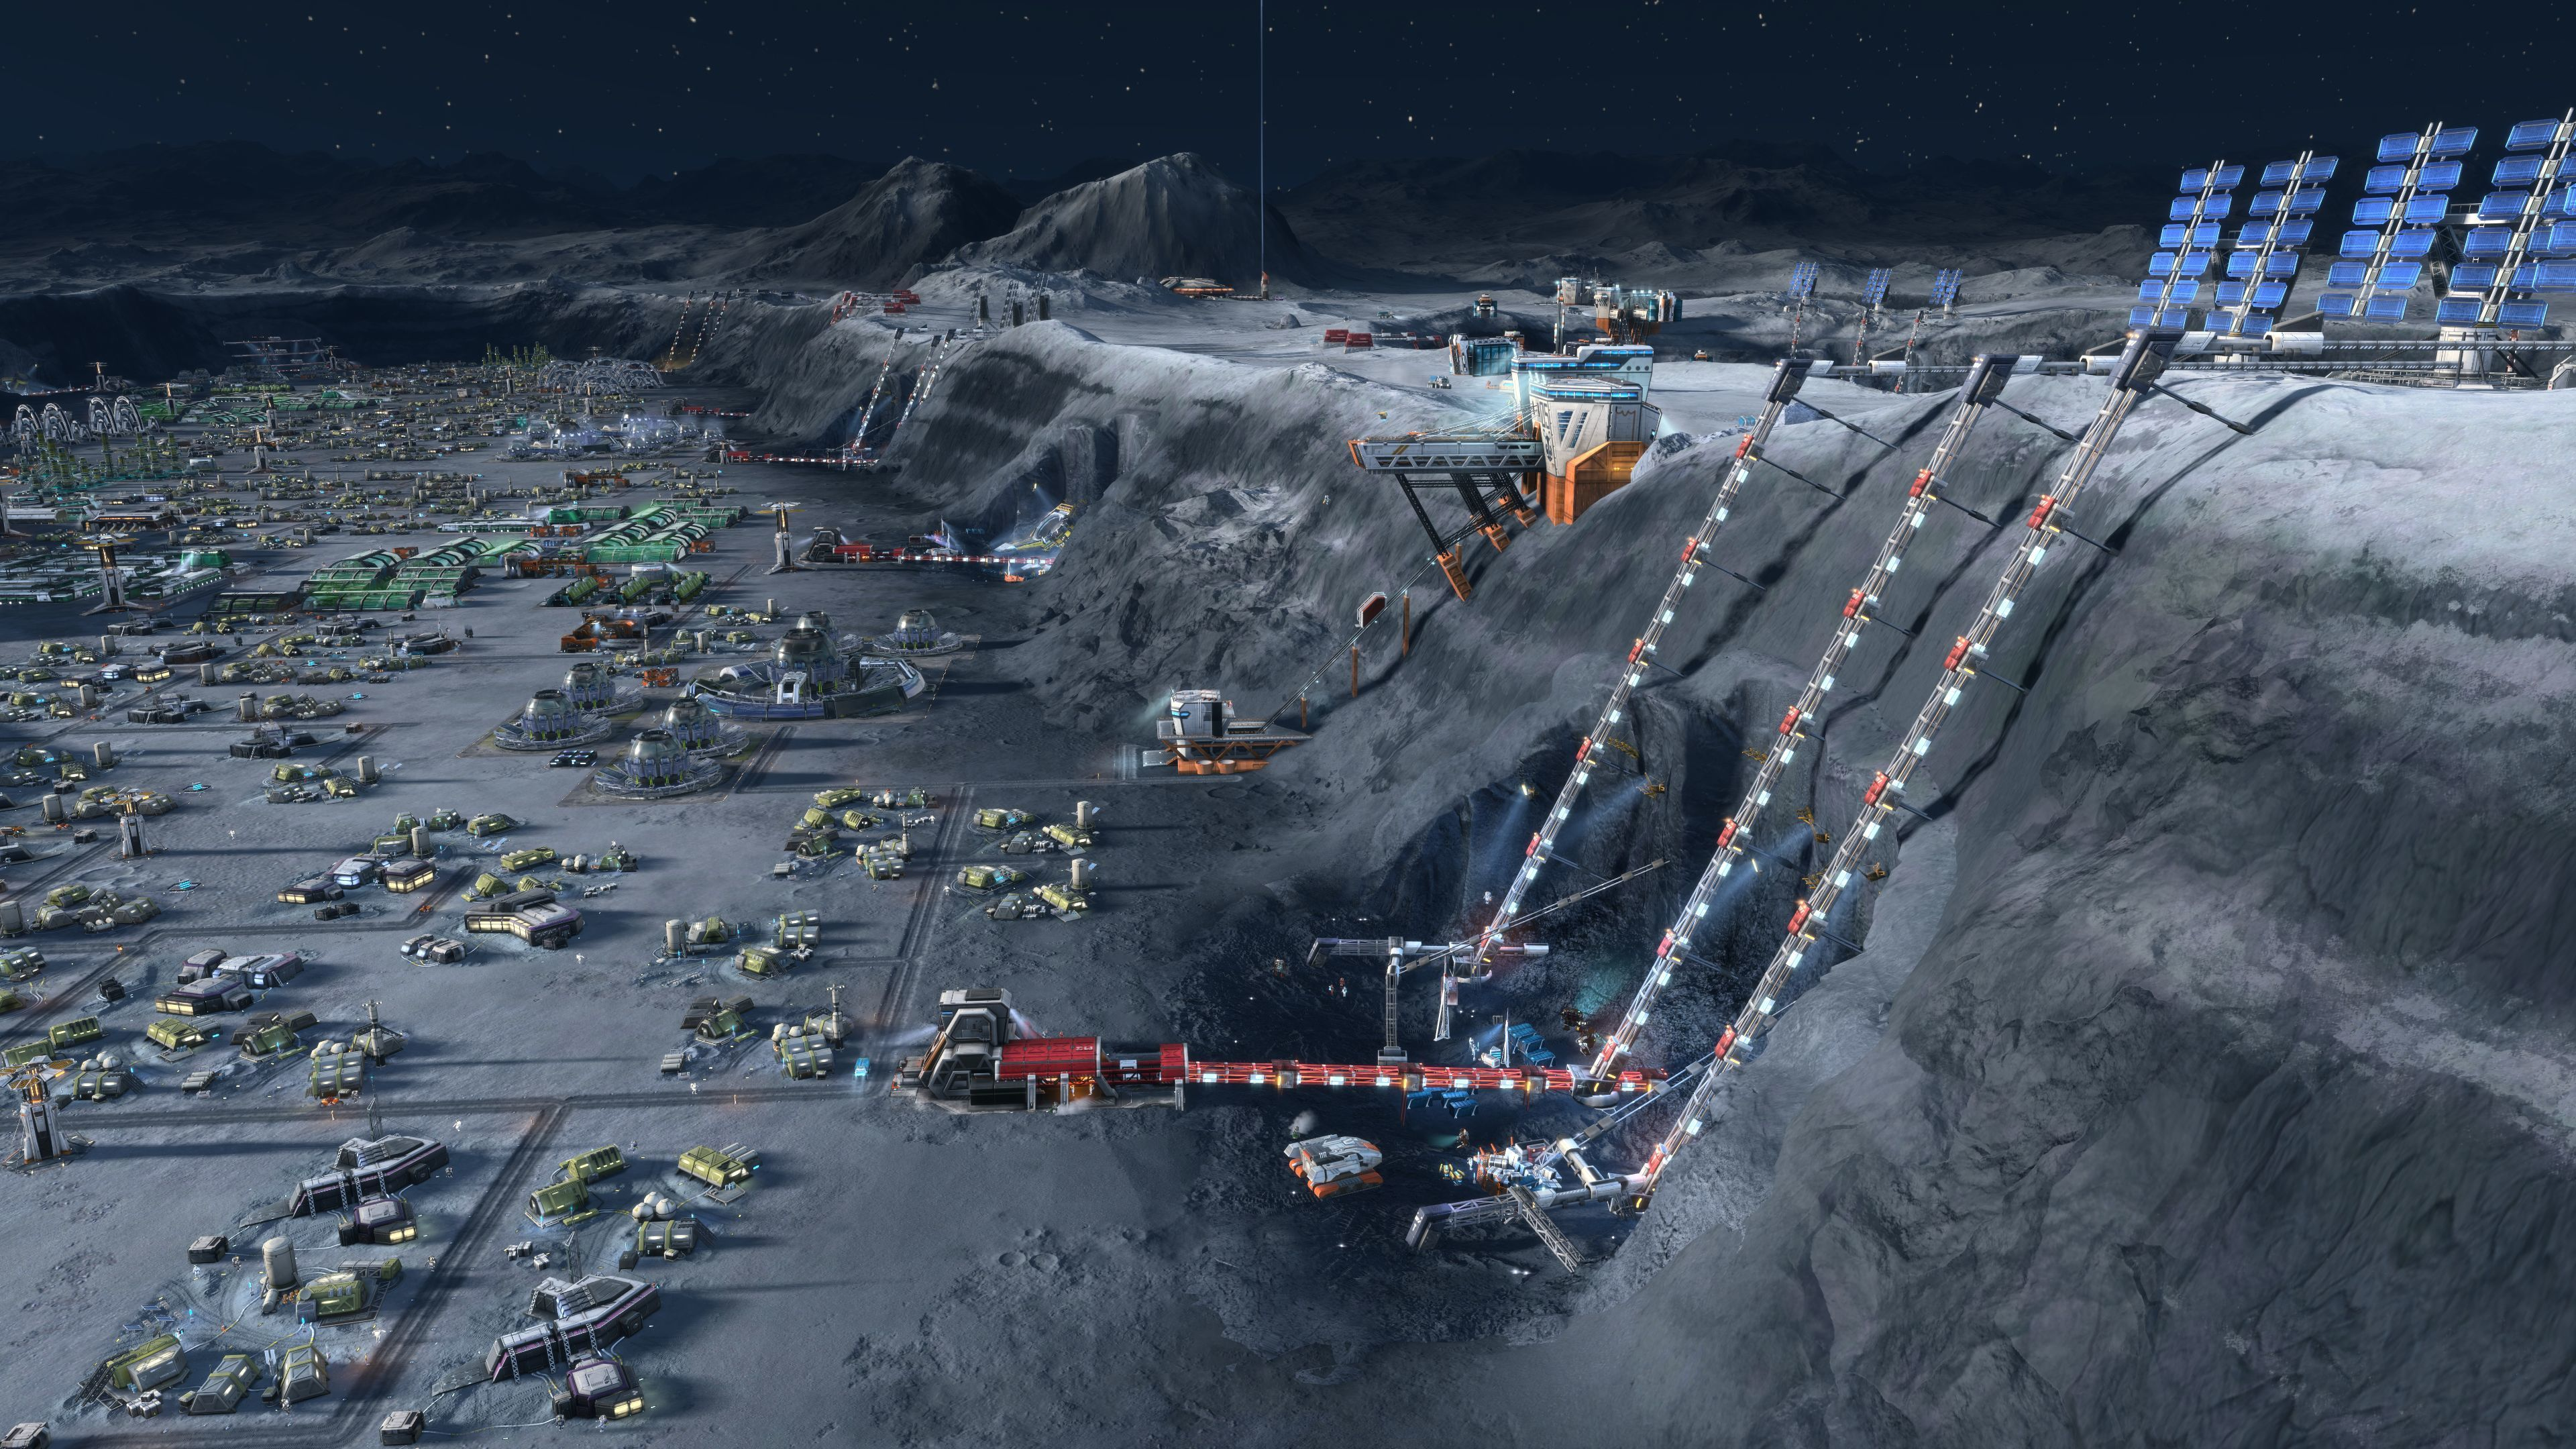 Windows 8 Official Wallpaper Hd Anno 2205 Launched And Benchmarked On Pc Performance